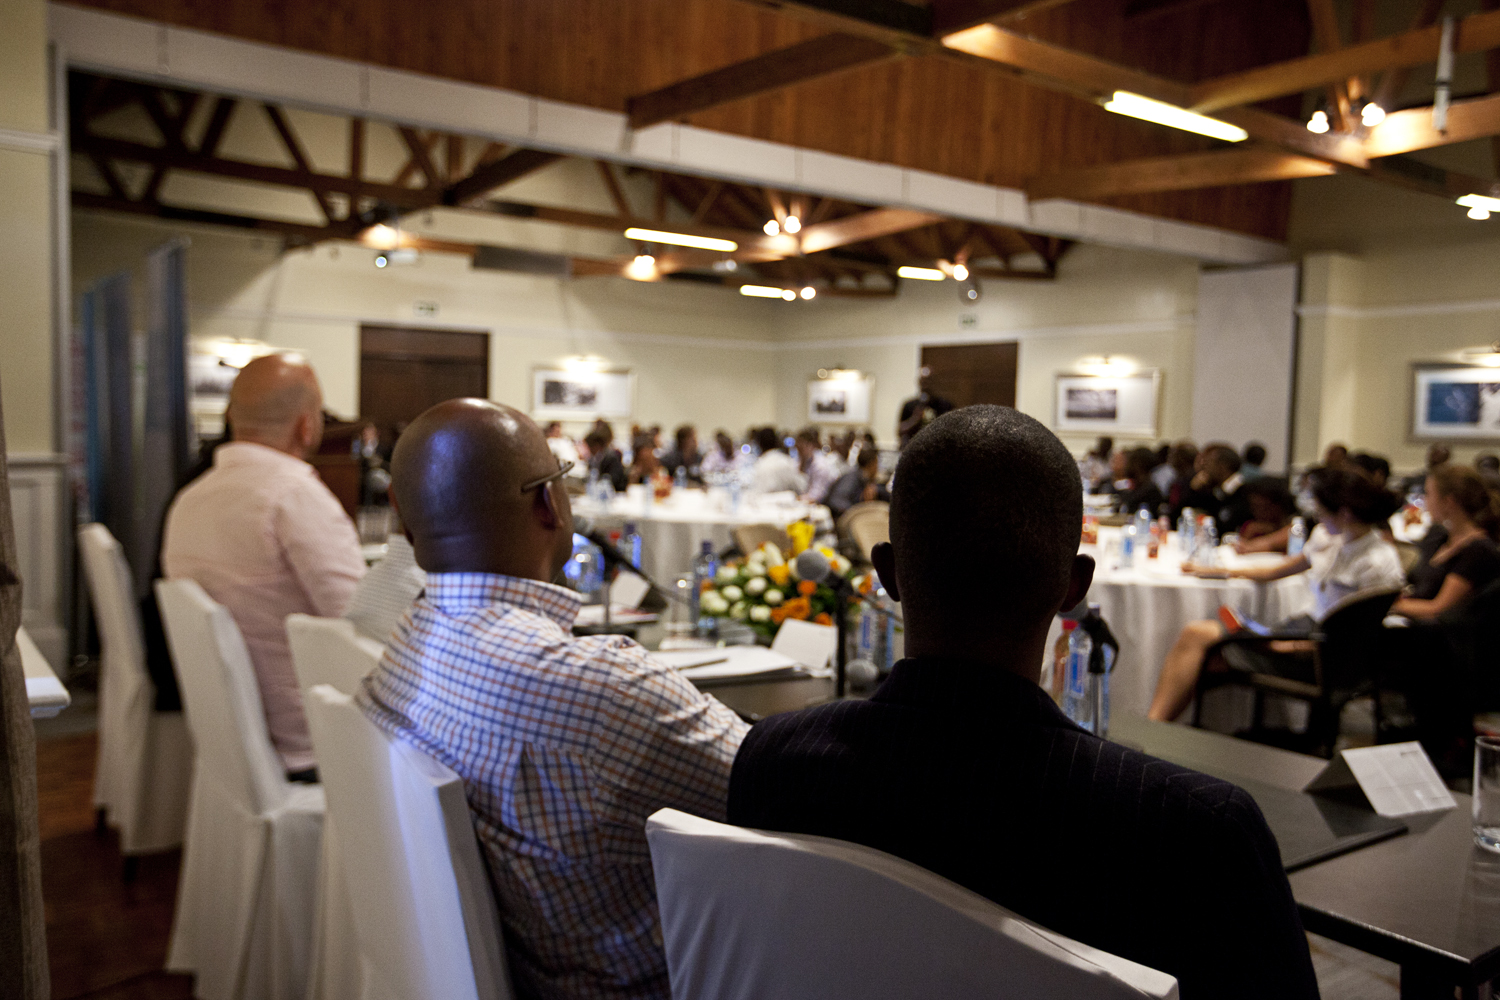 Mobile Web Africa Returns to Johannesburg and Promises to Drive Progress